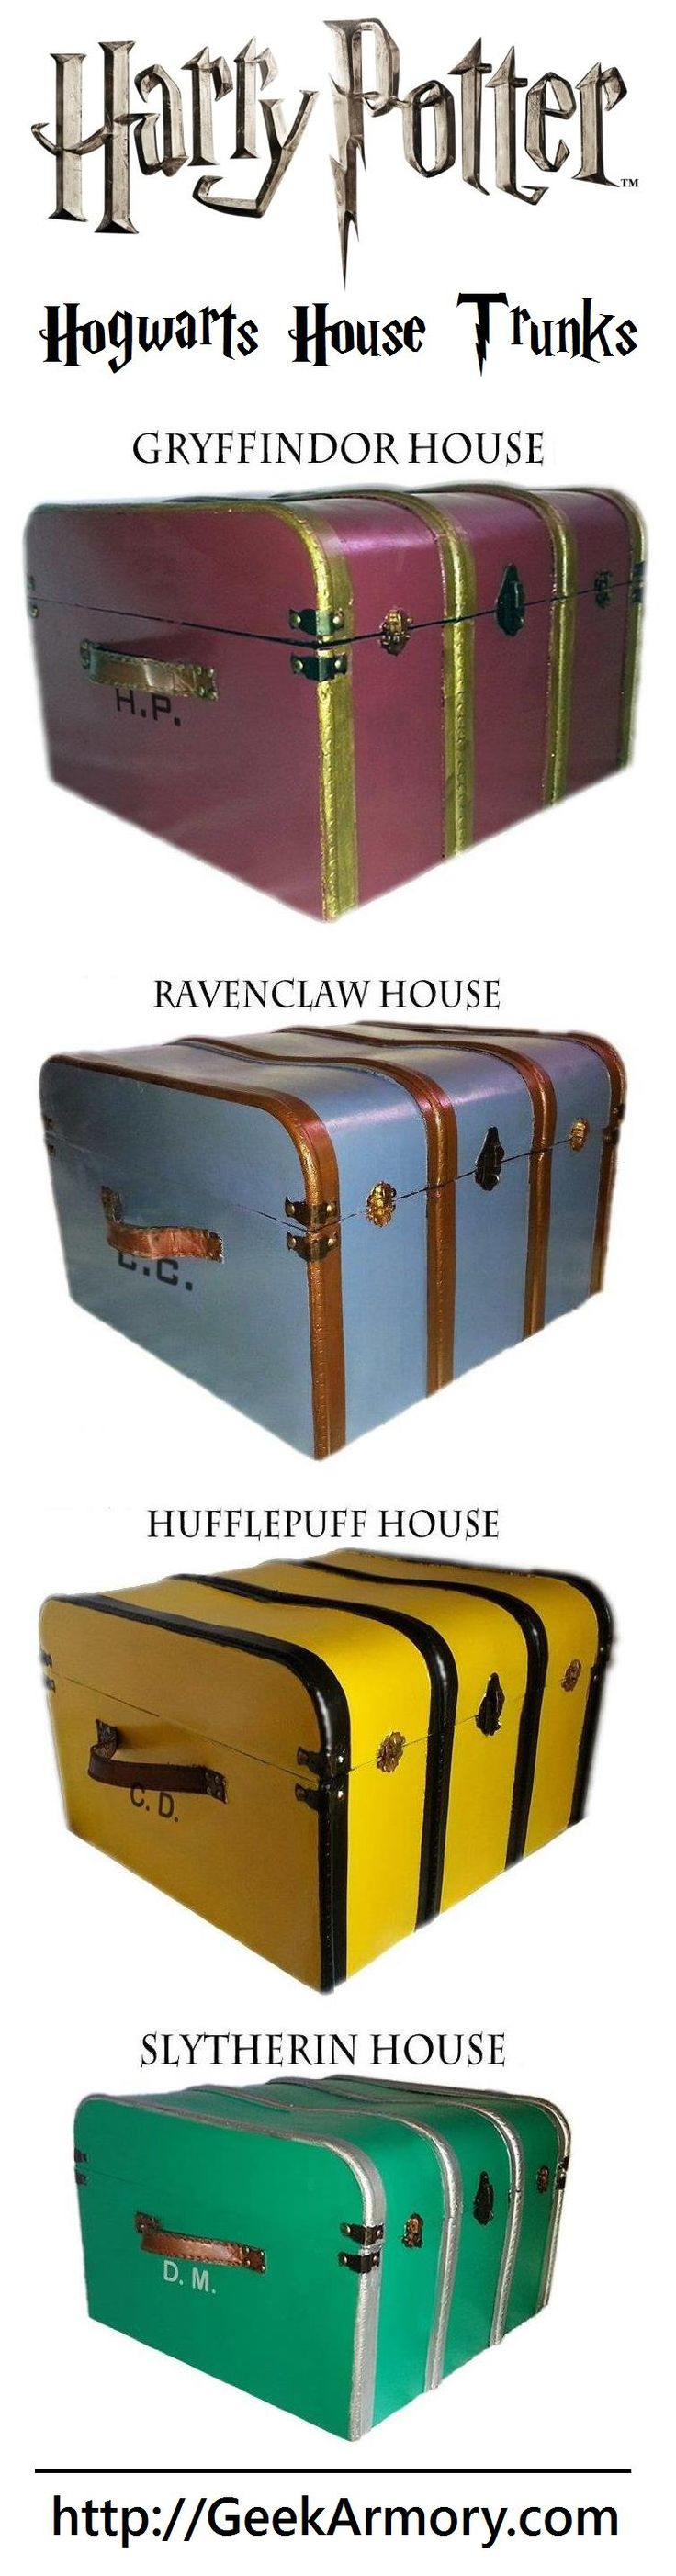 Hogwarts House Trunks - Customized with your initials #NoelitoFlow please repin & like, listen to Noelito Flow Music. Thank You ,https://www.twitter,com/noelitoflow